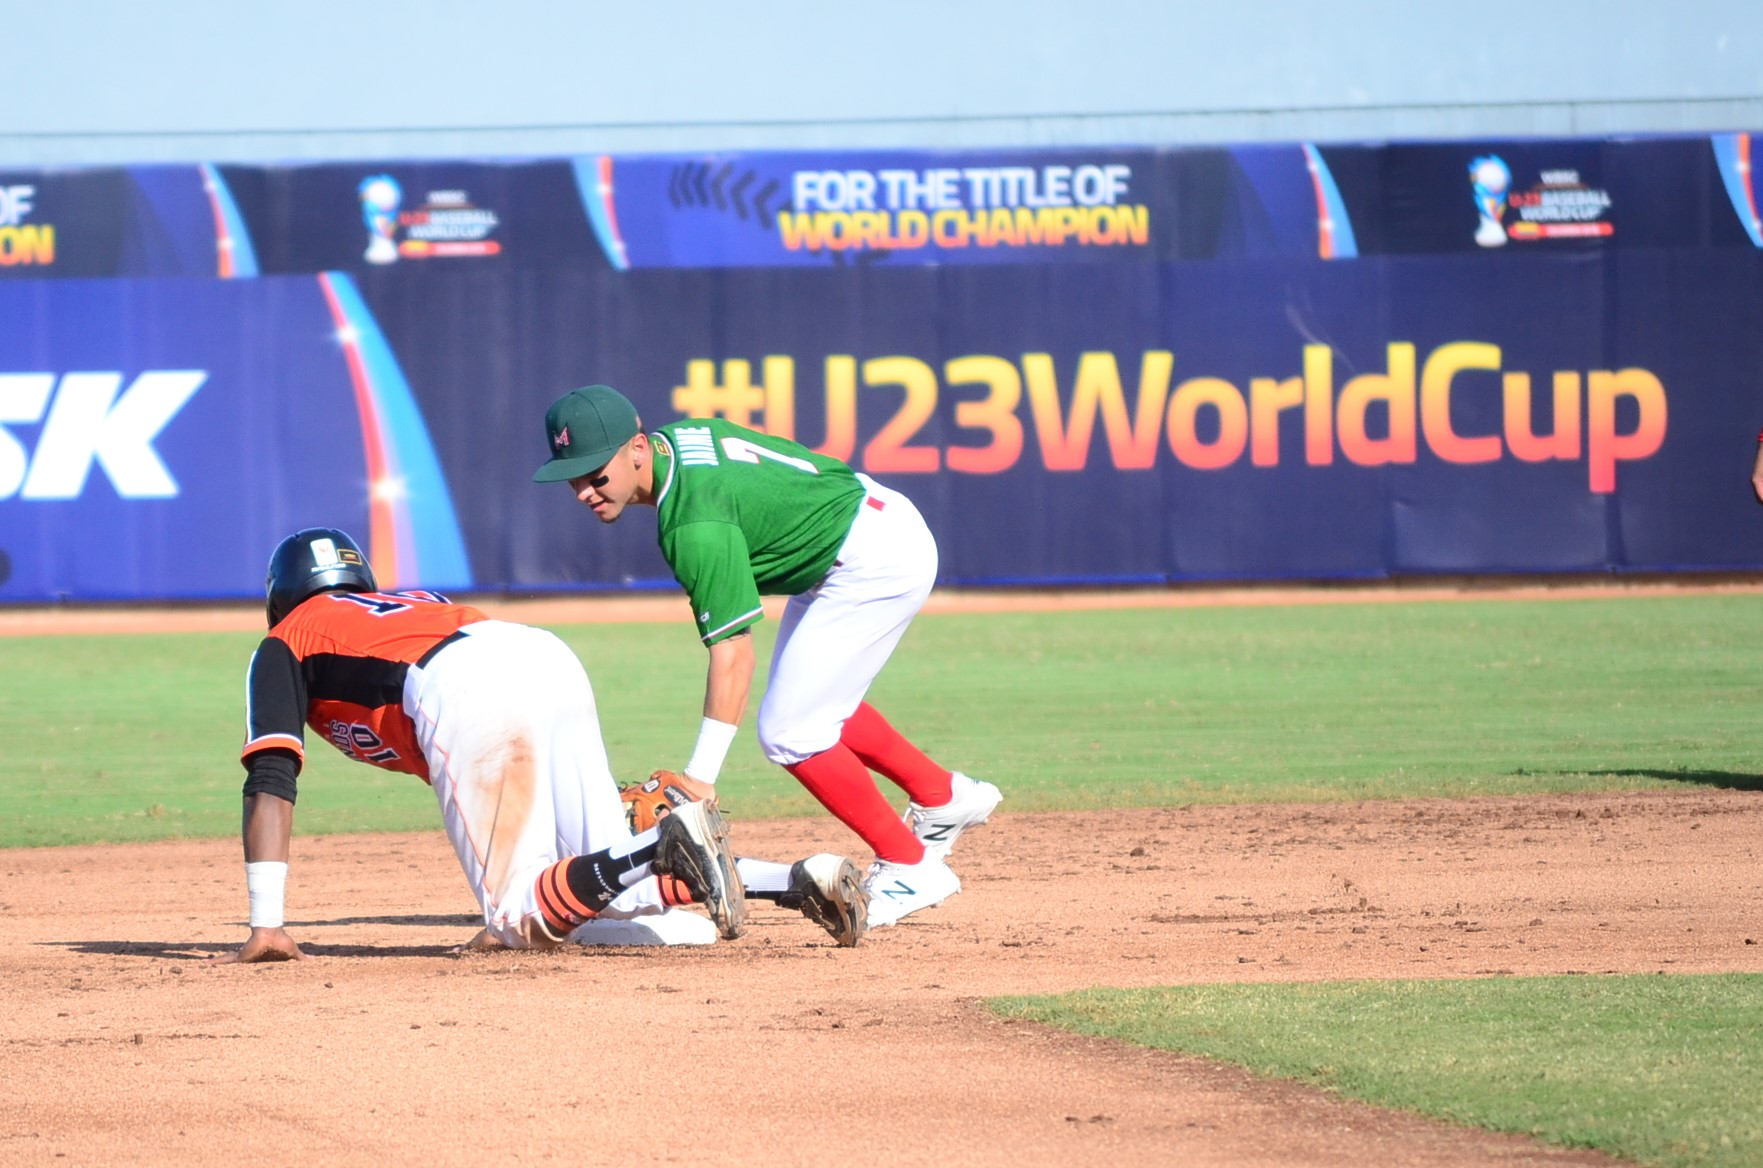 Mexico's shortstop Marco Jaime defends second base